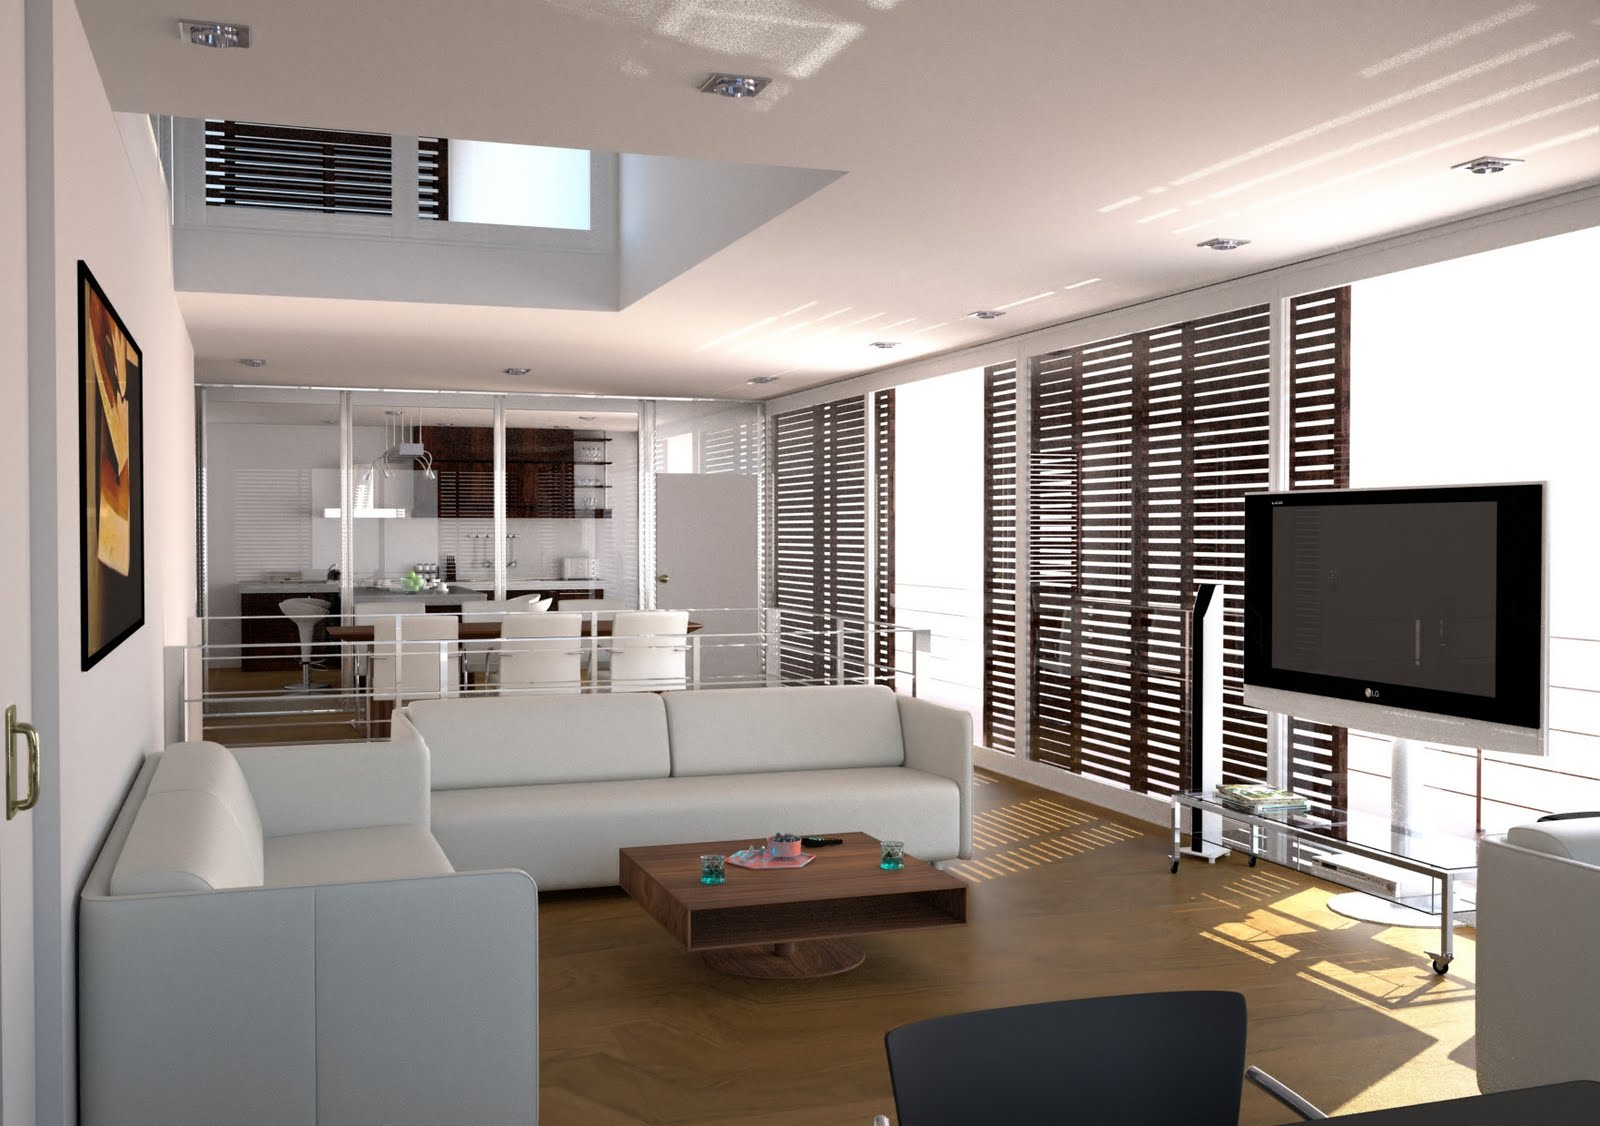 Design Interior Specialist Tips To Organizing House